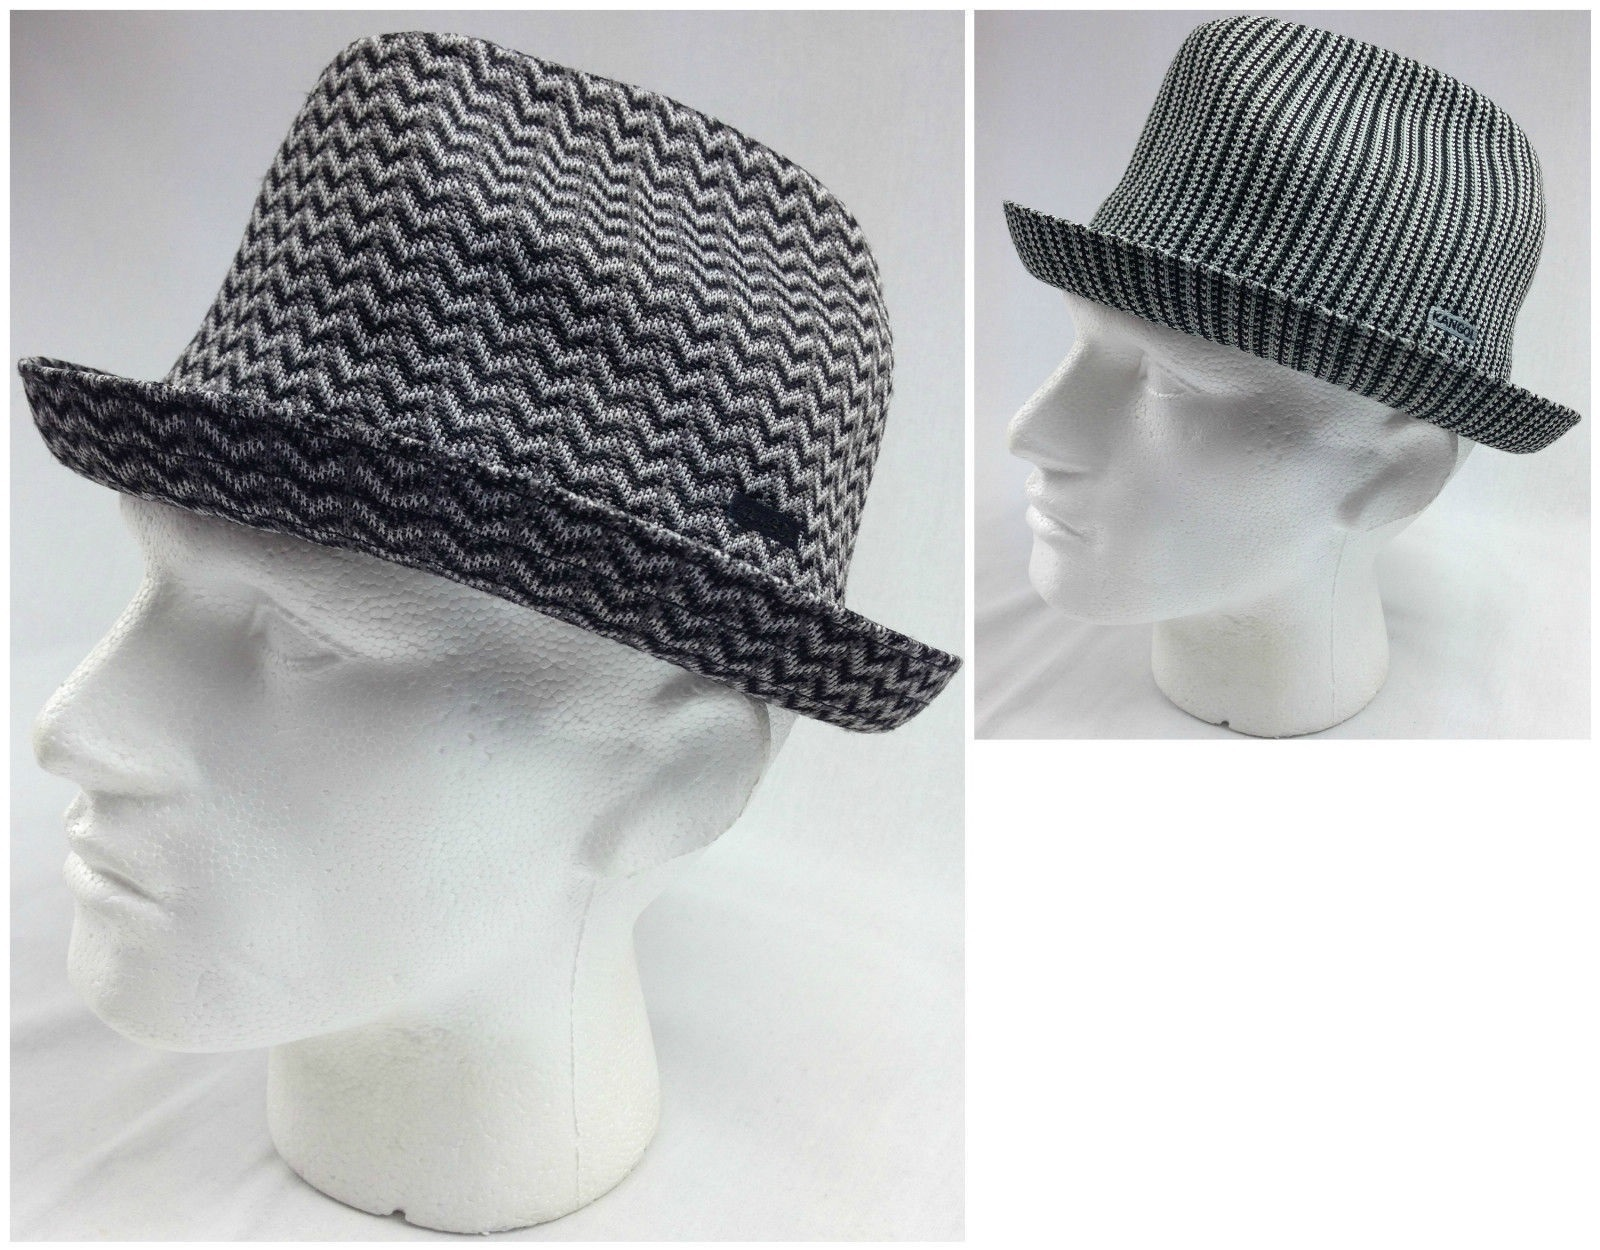 KANGOL Jacquard Player Trilby Hat K0242CO Tropic Fedora Style with ... 9564461667a